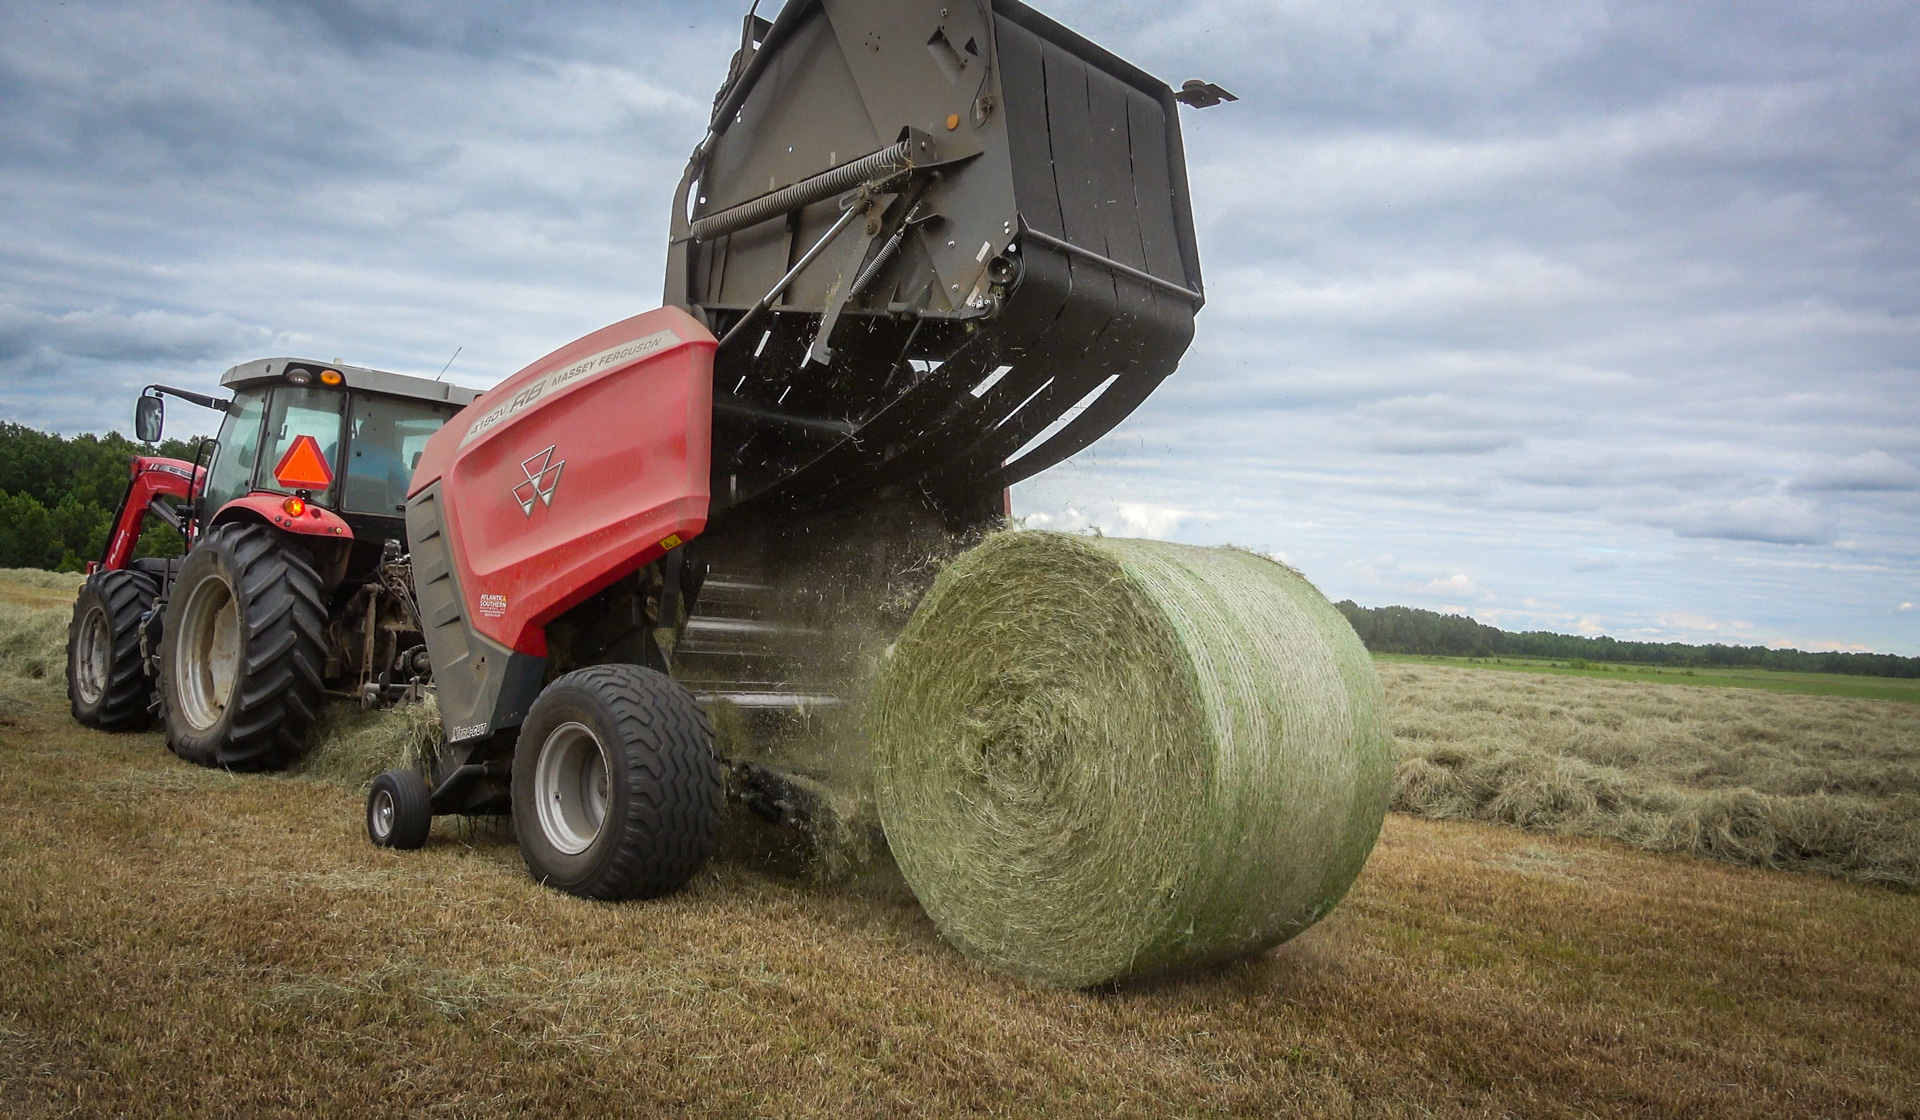 A fast back door allows for quick bale release and less time in the field.